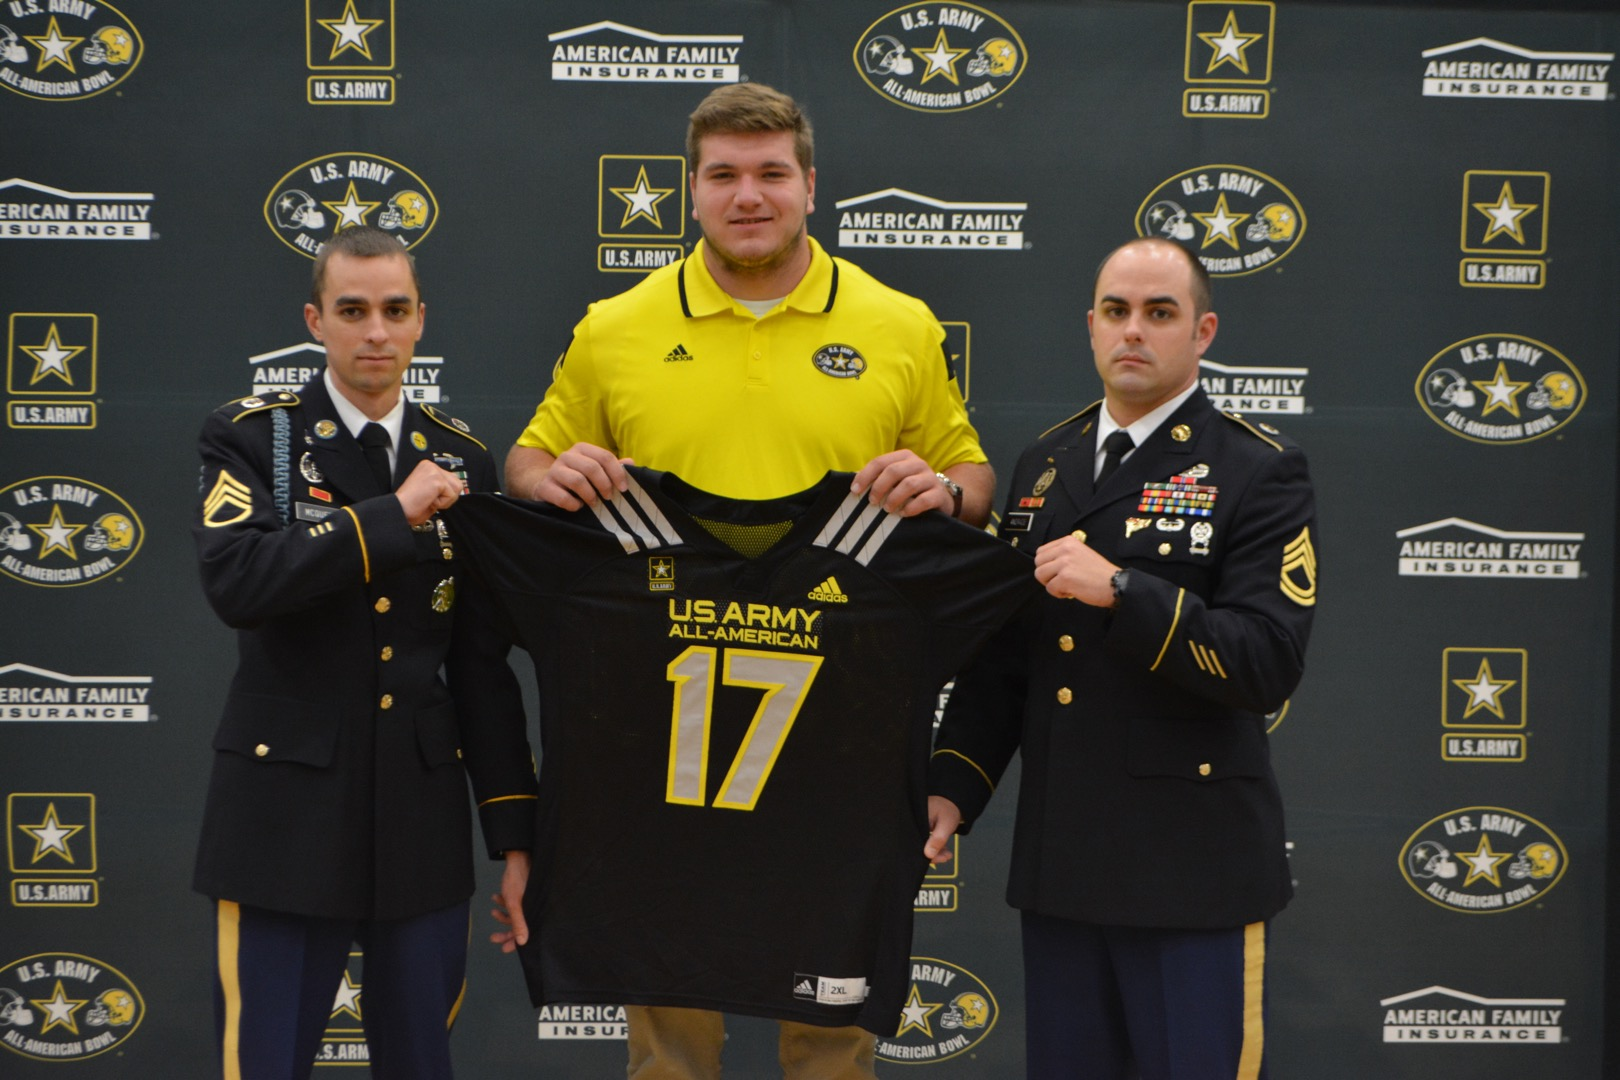 Josh Myers receives his Army All-American Bowl jersey (Photo: Army All-American Bowl)